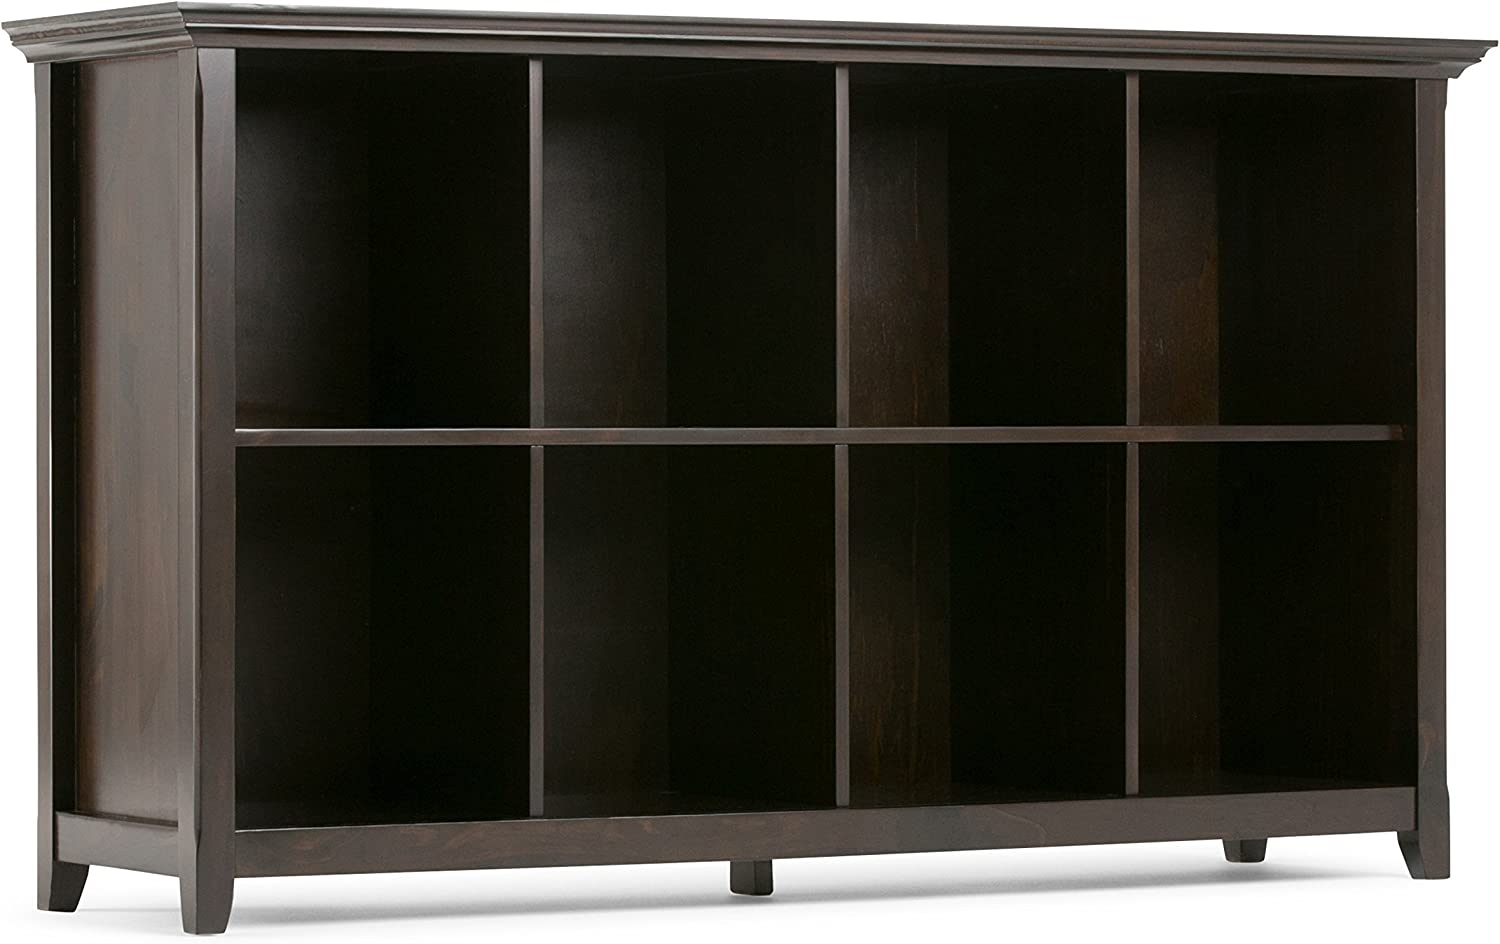 Simpli Home AXCAMH-005 Amherst Solid Wood 57 inch Wide Transitional 8 Cube Bookcase Storage Sofa Table in Dark Brown